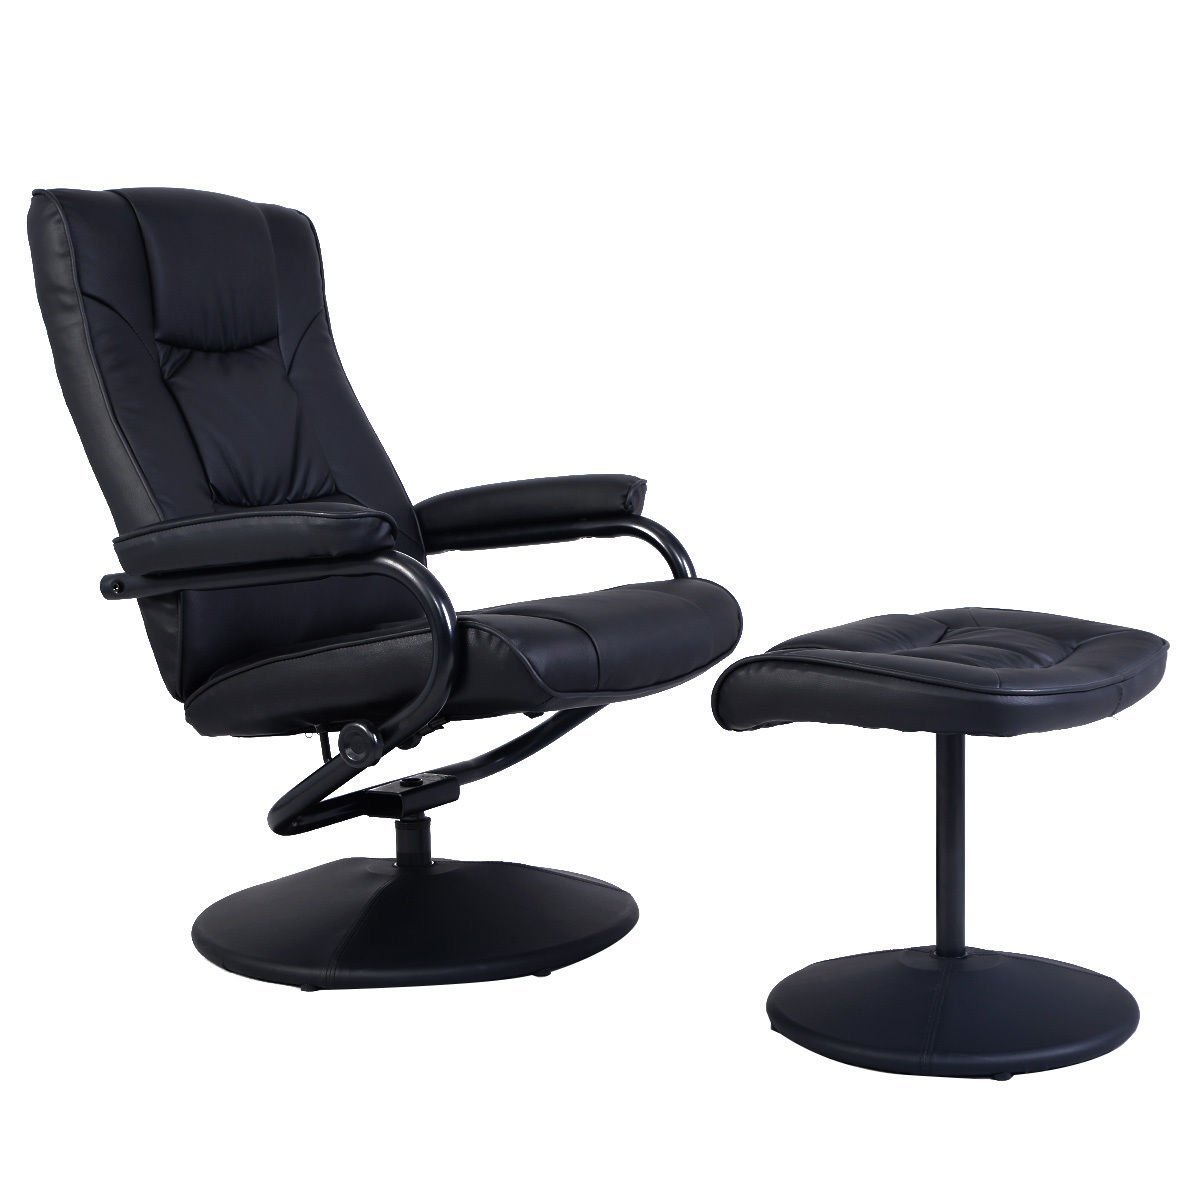 Giantex Recliner Chair Swivel Armchair Lounge Seat